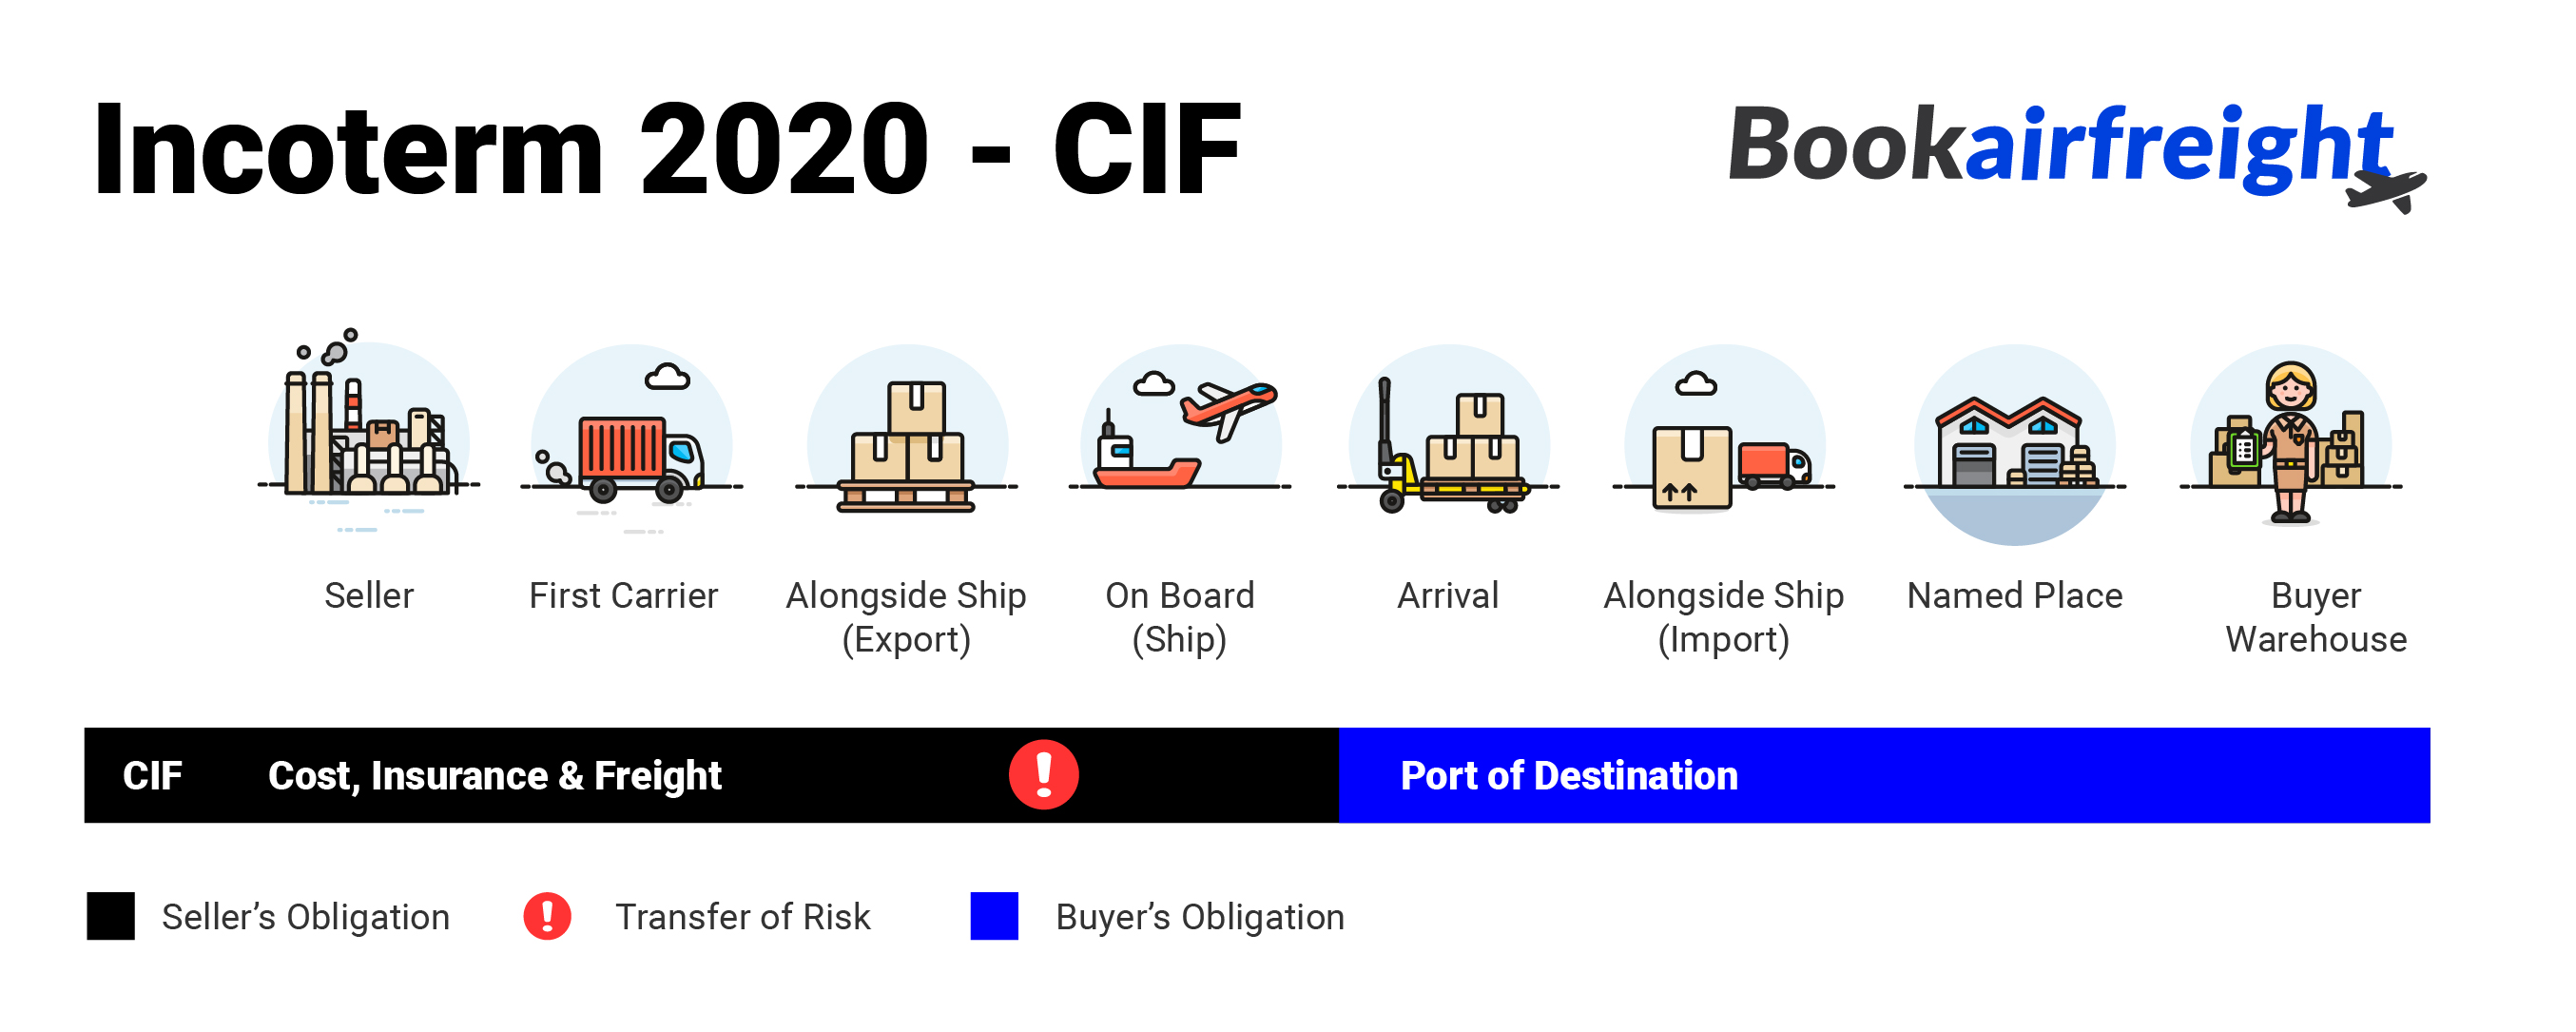 Bookairfreight - what is CIF?